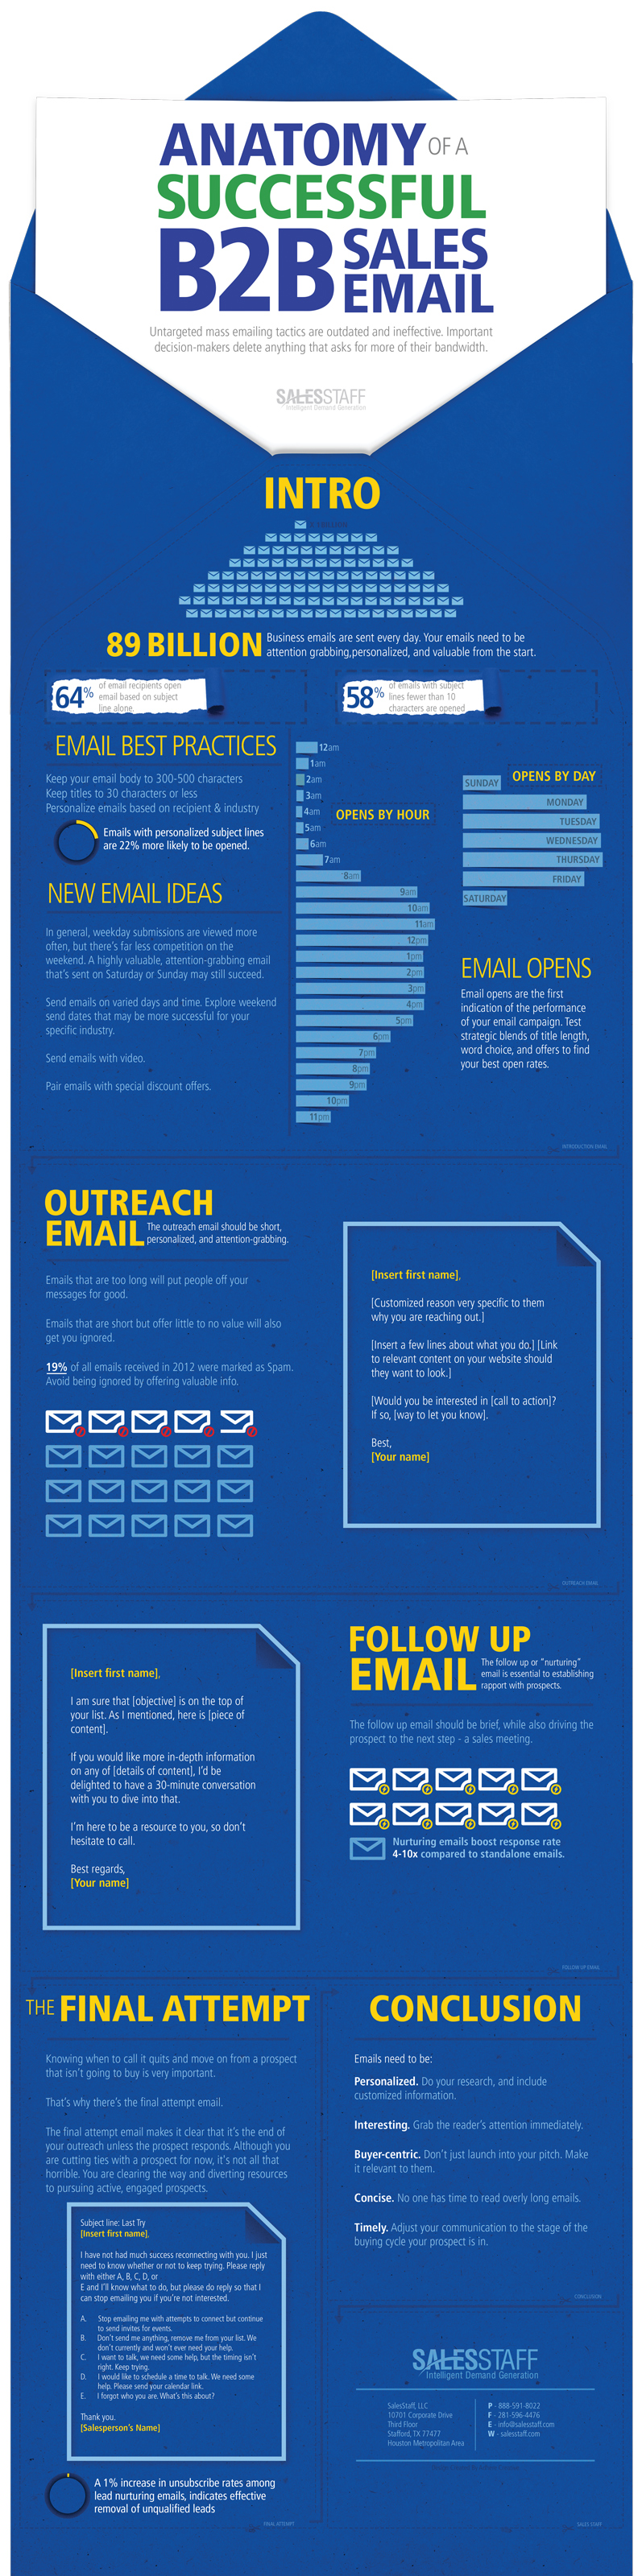 Infographic – Anatomy of a Successful B2B Sales Email